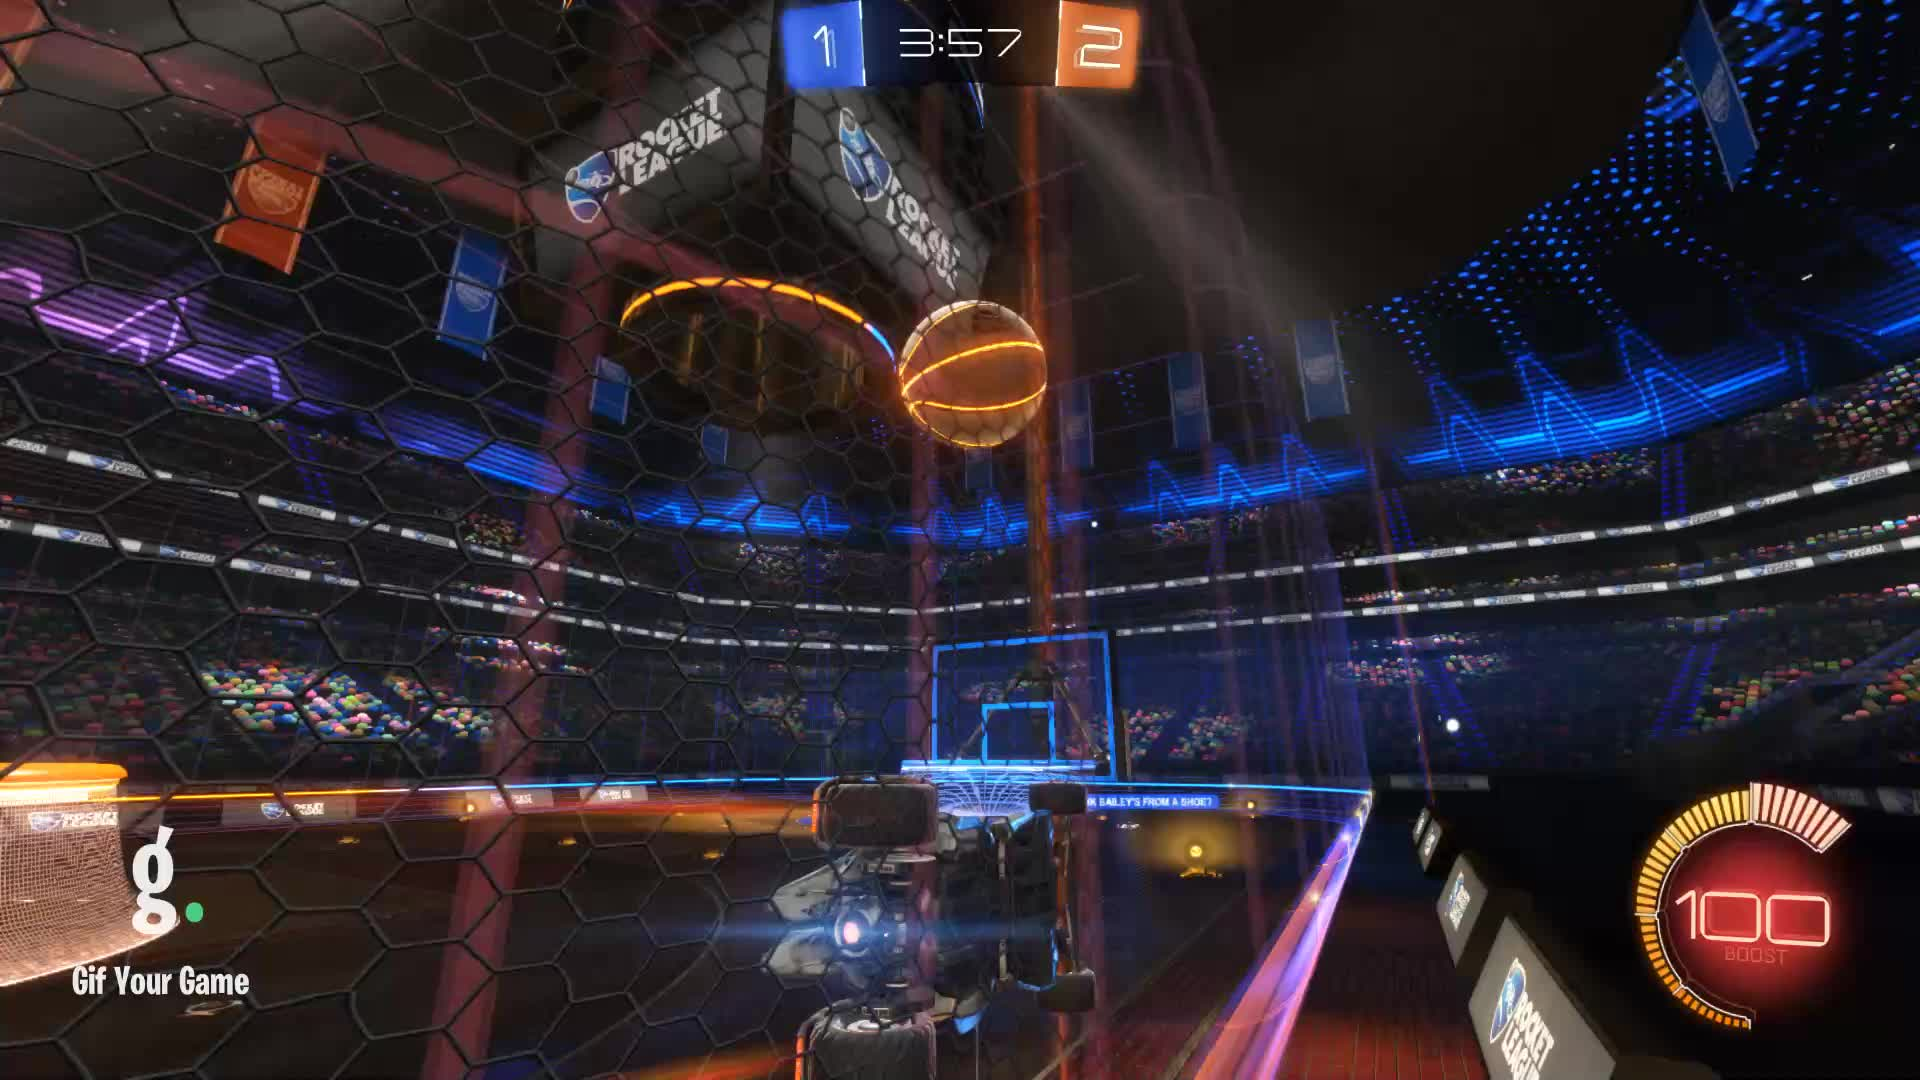 Gif Your Game, GifYourGame, Rocket League, RocketLeague, Stuffed Mushrooms, Stuffed Mushrooms Clip 1 GIFs